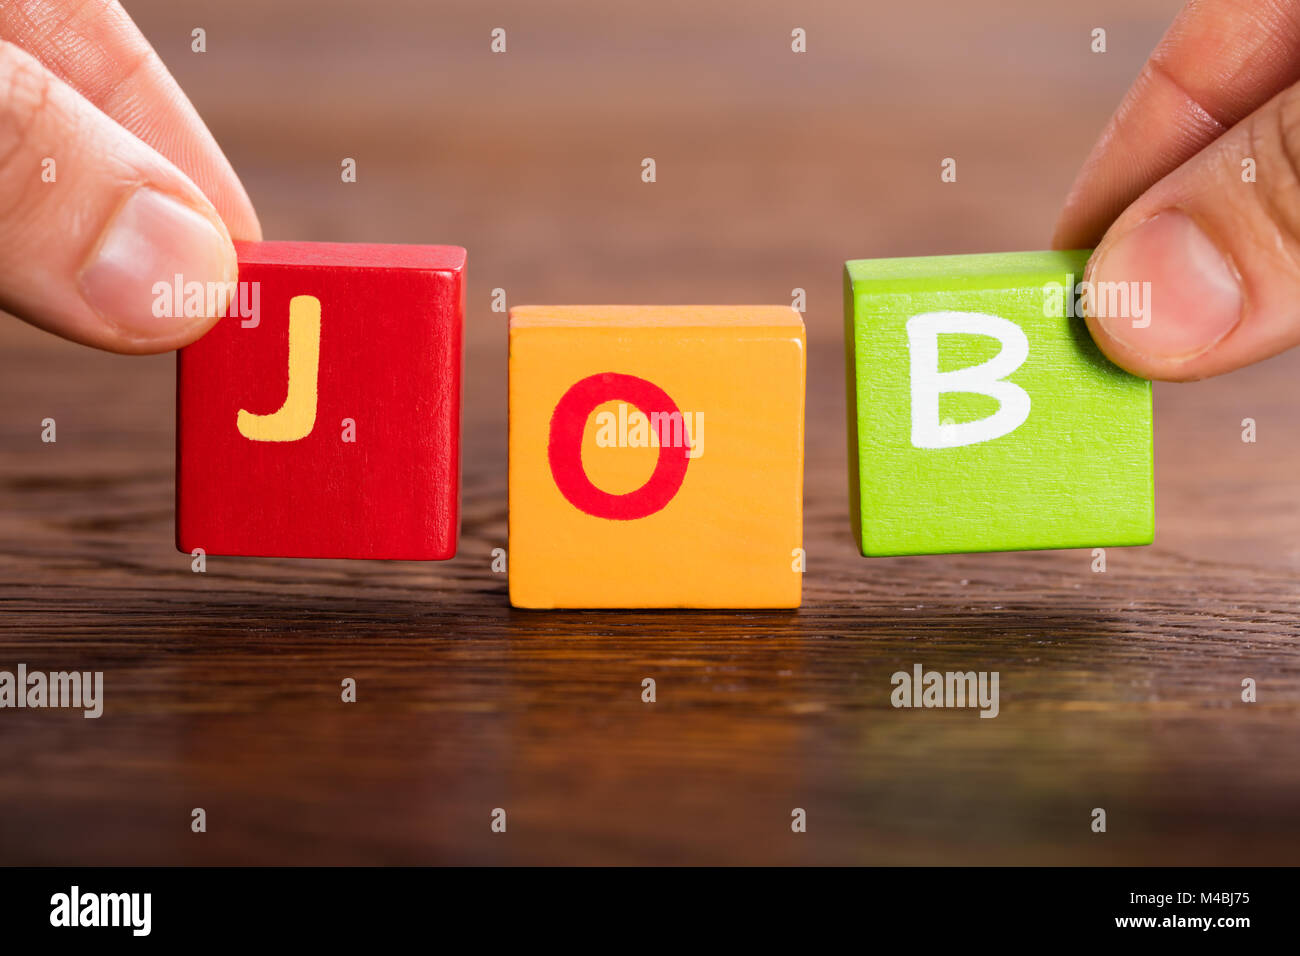 Person Hand Arranging Blocks For Making The Word Job On Table - Stock Image